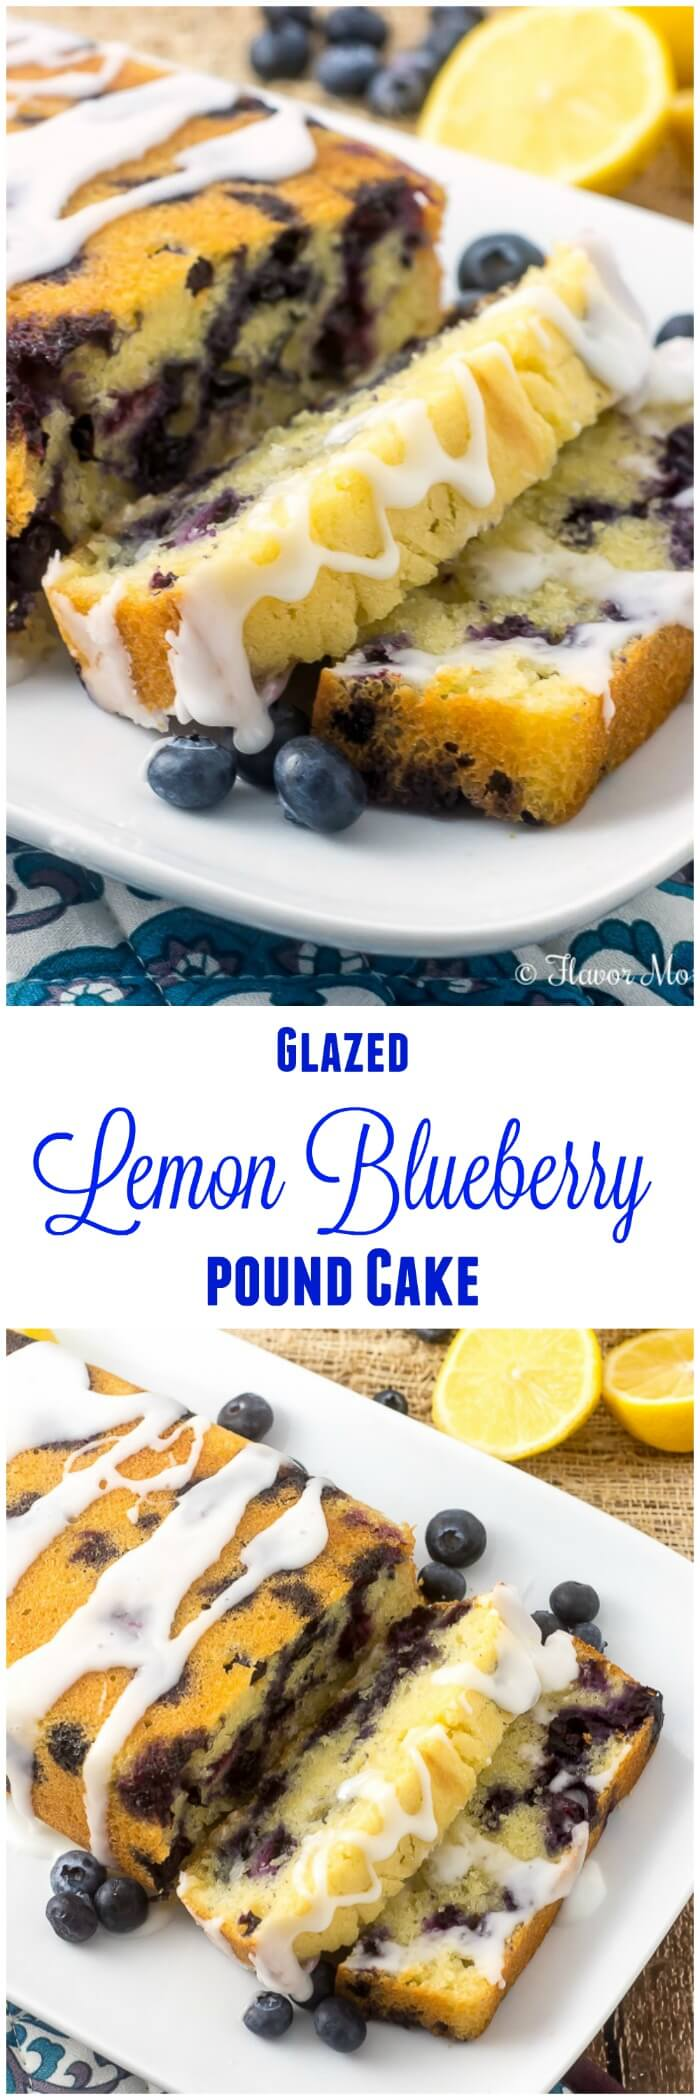 This Glazed Lemon Blueberry Pound Cake is a moist, luscious, buttery, lemon pound cake made with beautiful fresh blueberries throughout and glazed with a sweet, tangy lemon icing. It is similar to the Iced Lemon Pound Cake found at Starbucks but with the addition of fresh blueberries.